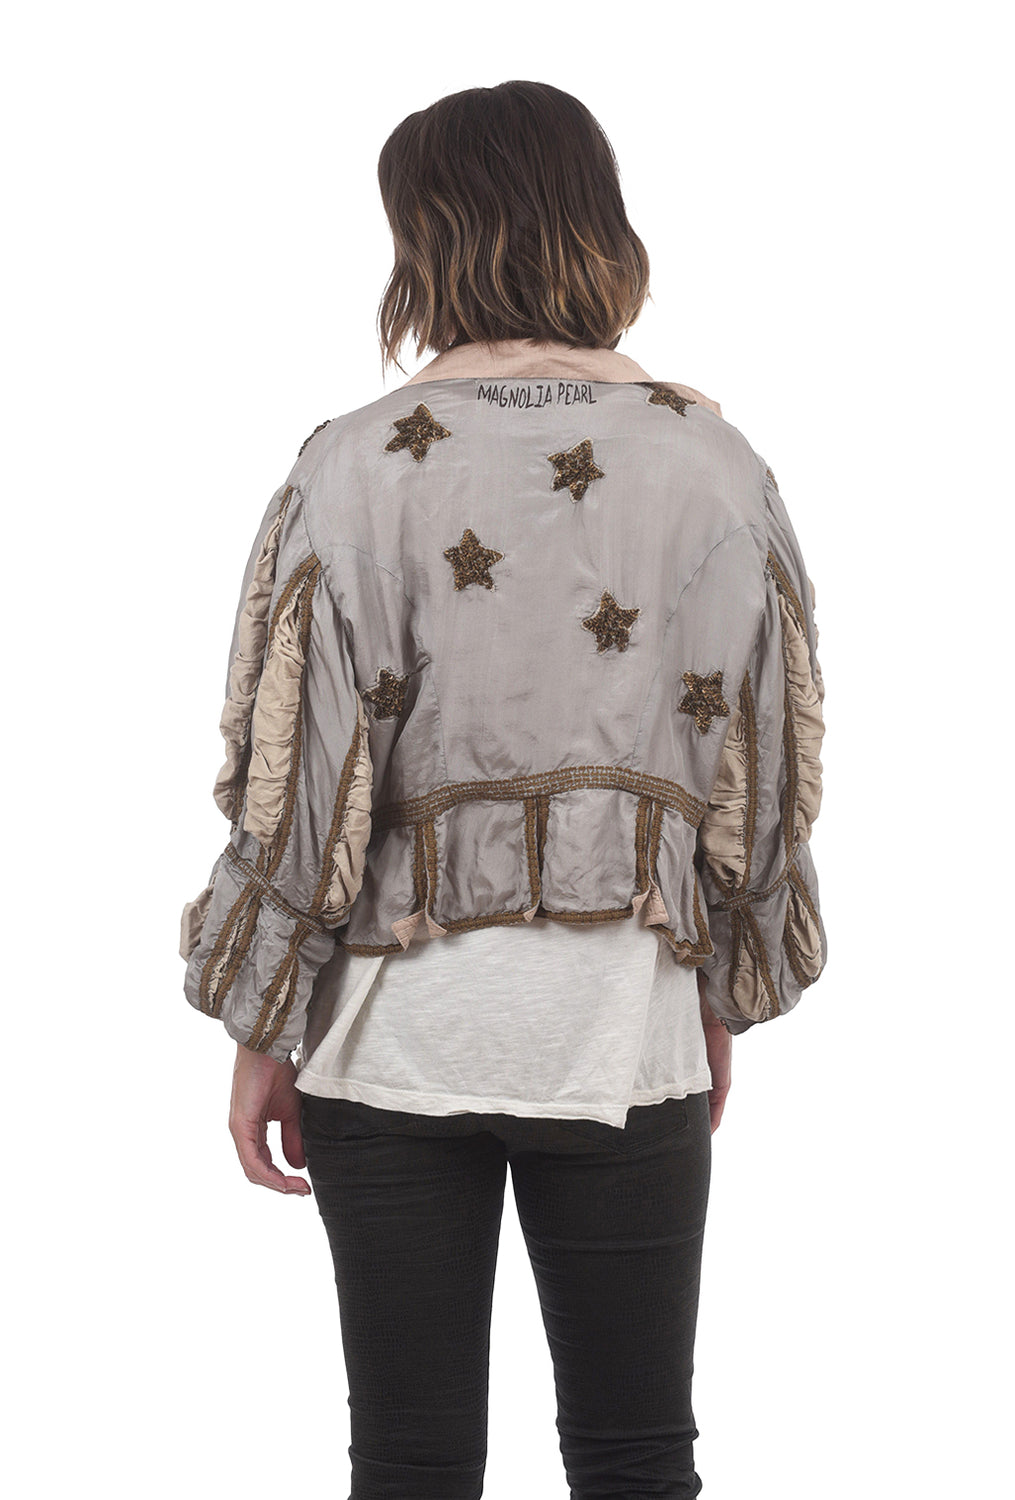 Magnolia Pearl Silk Monique Jacket, Moondust One Size Moondust